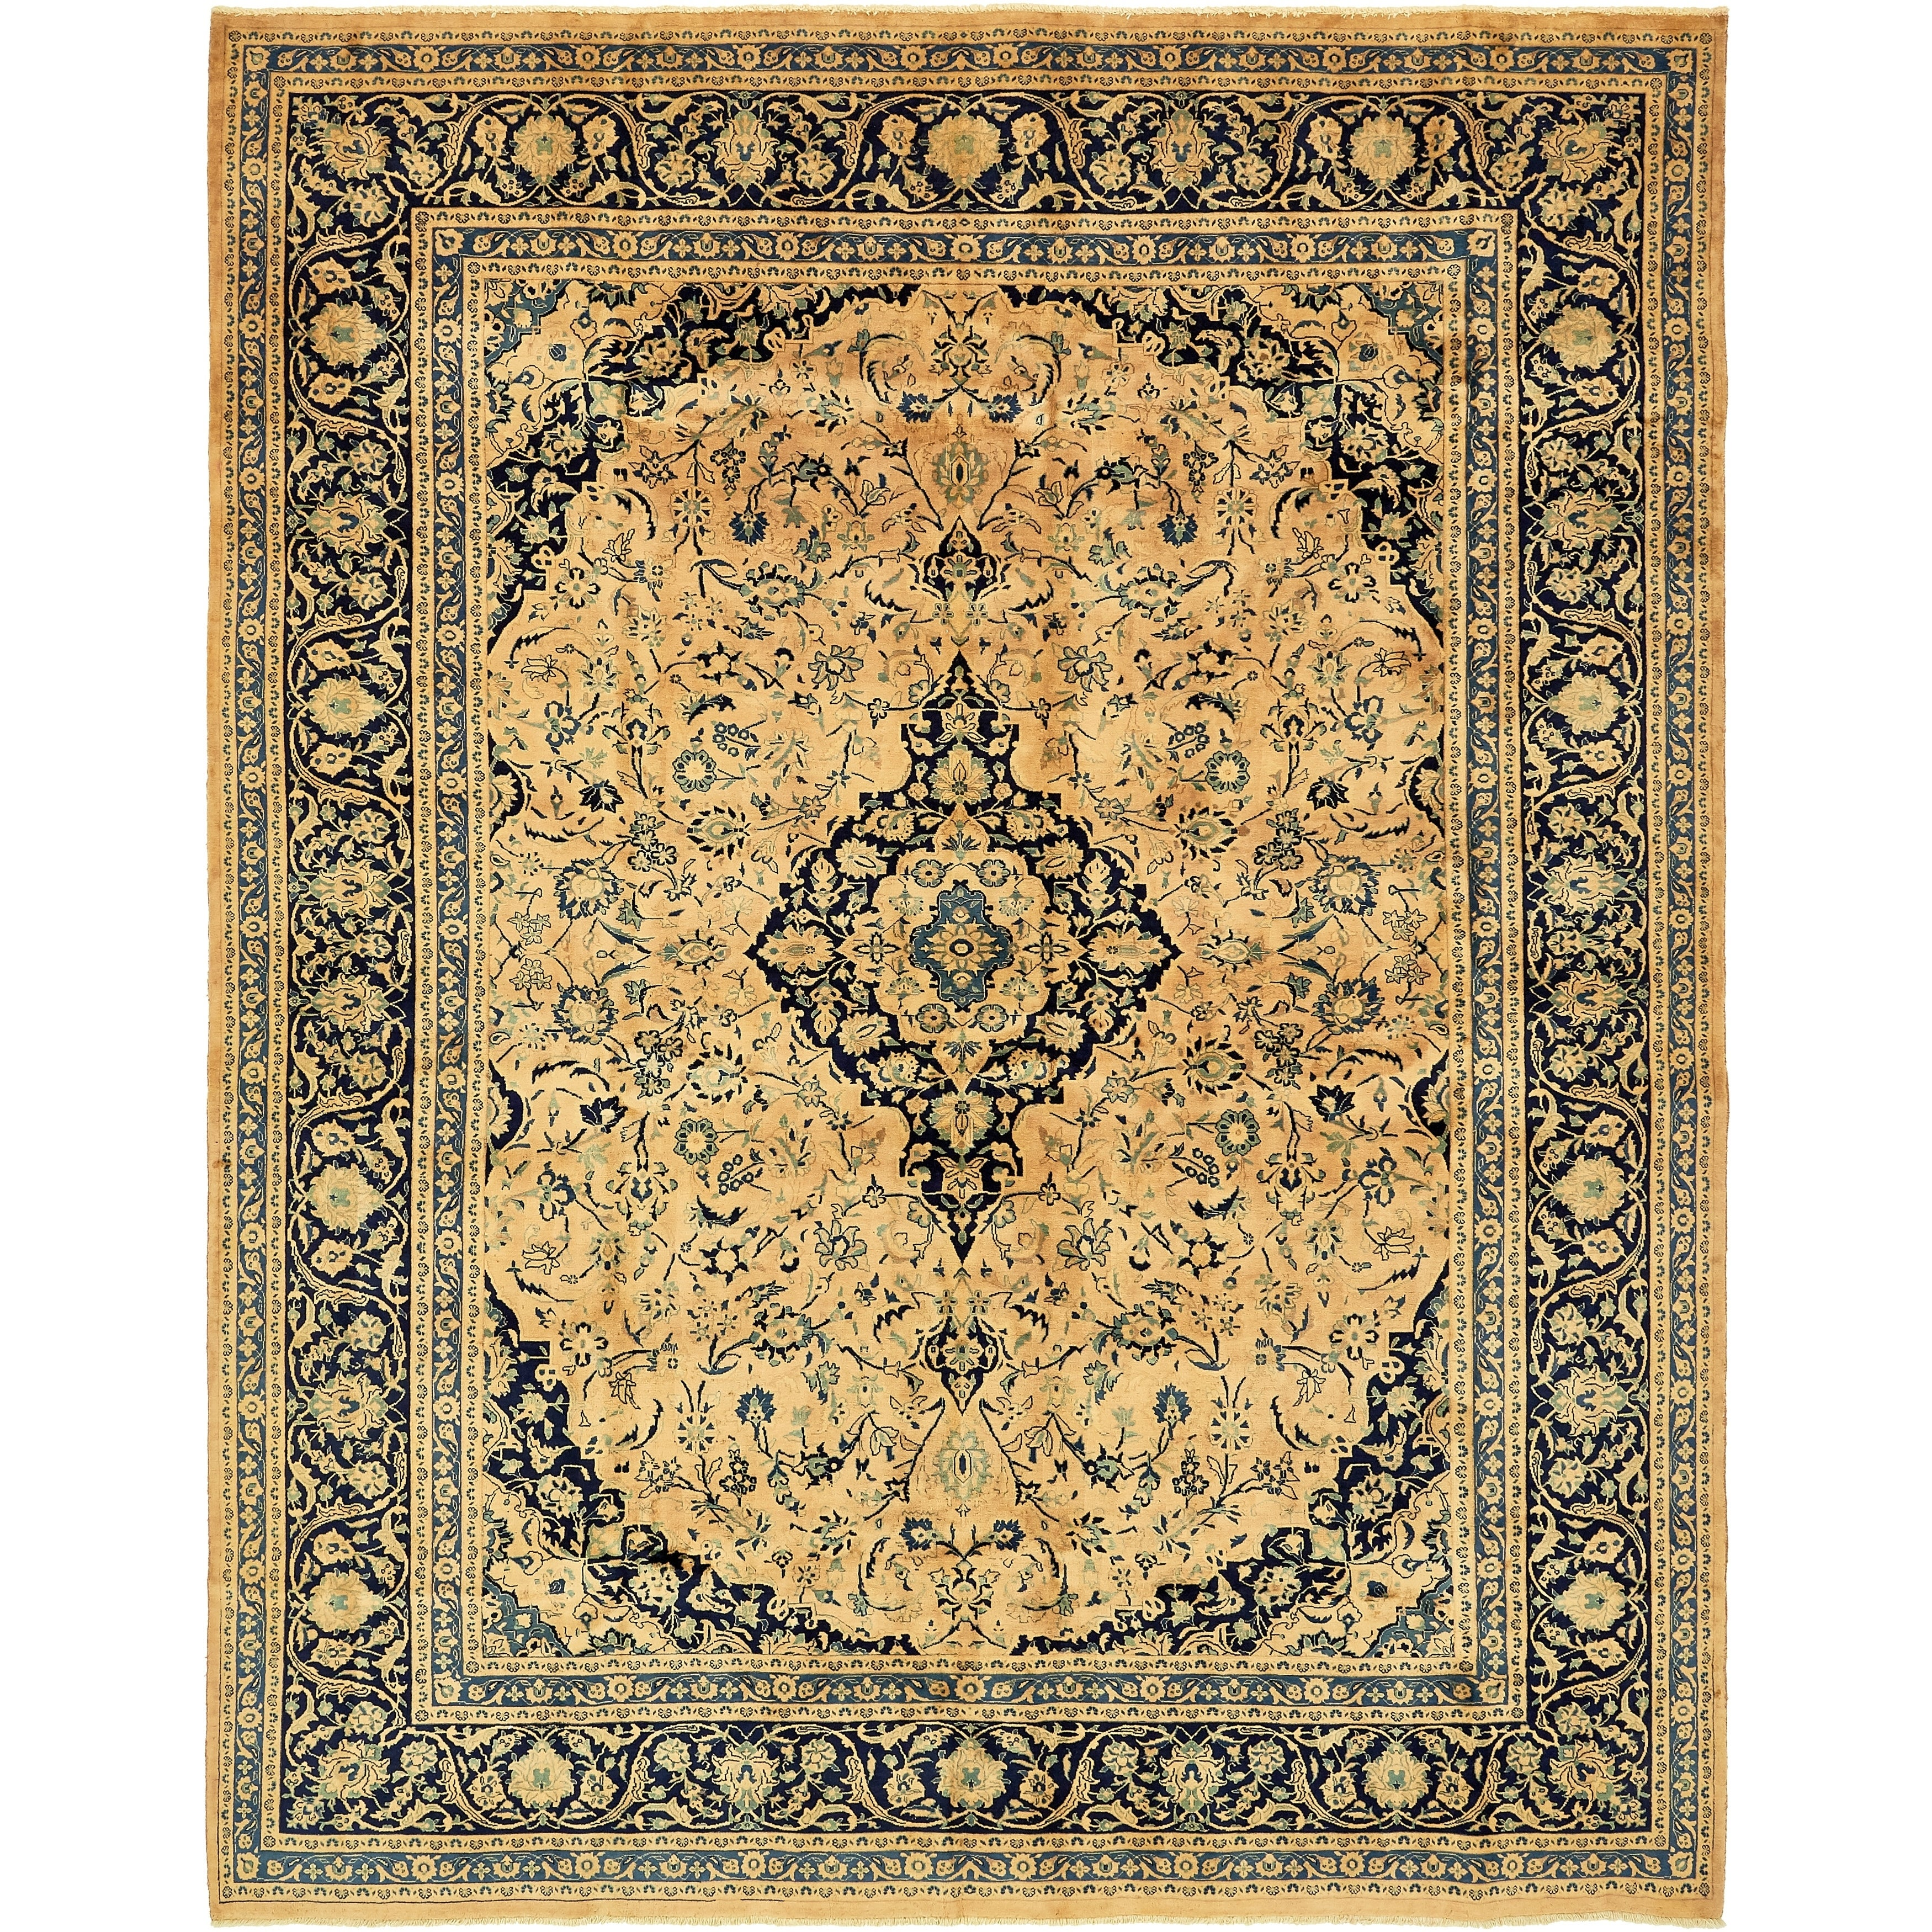 Hand Knotted Kashan Semi Antique Wool Area Rug - 9' 10 x 12' 6 (peach - 9' 10 x 12' 6)